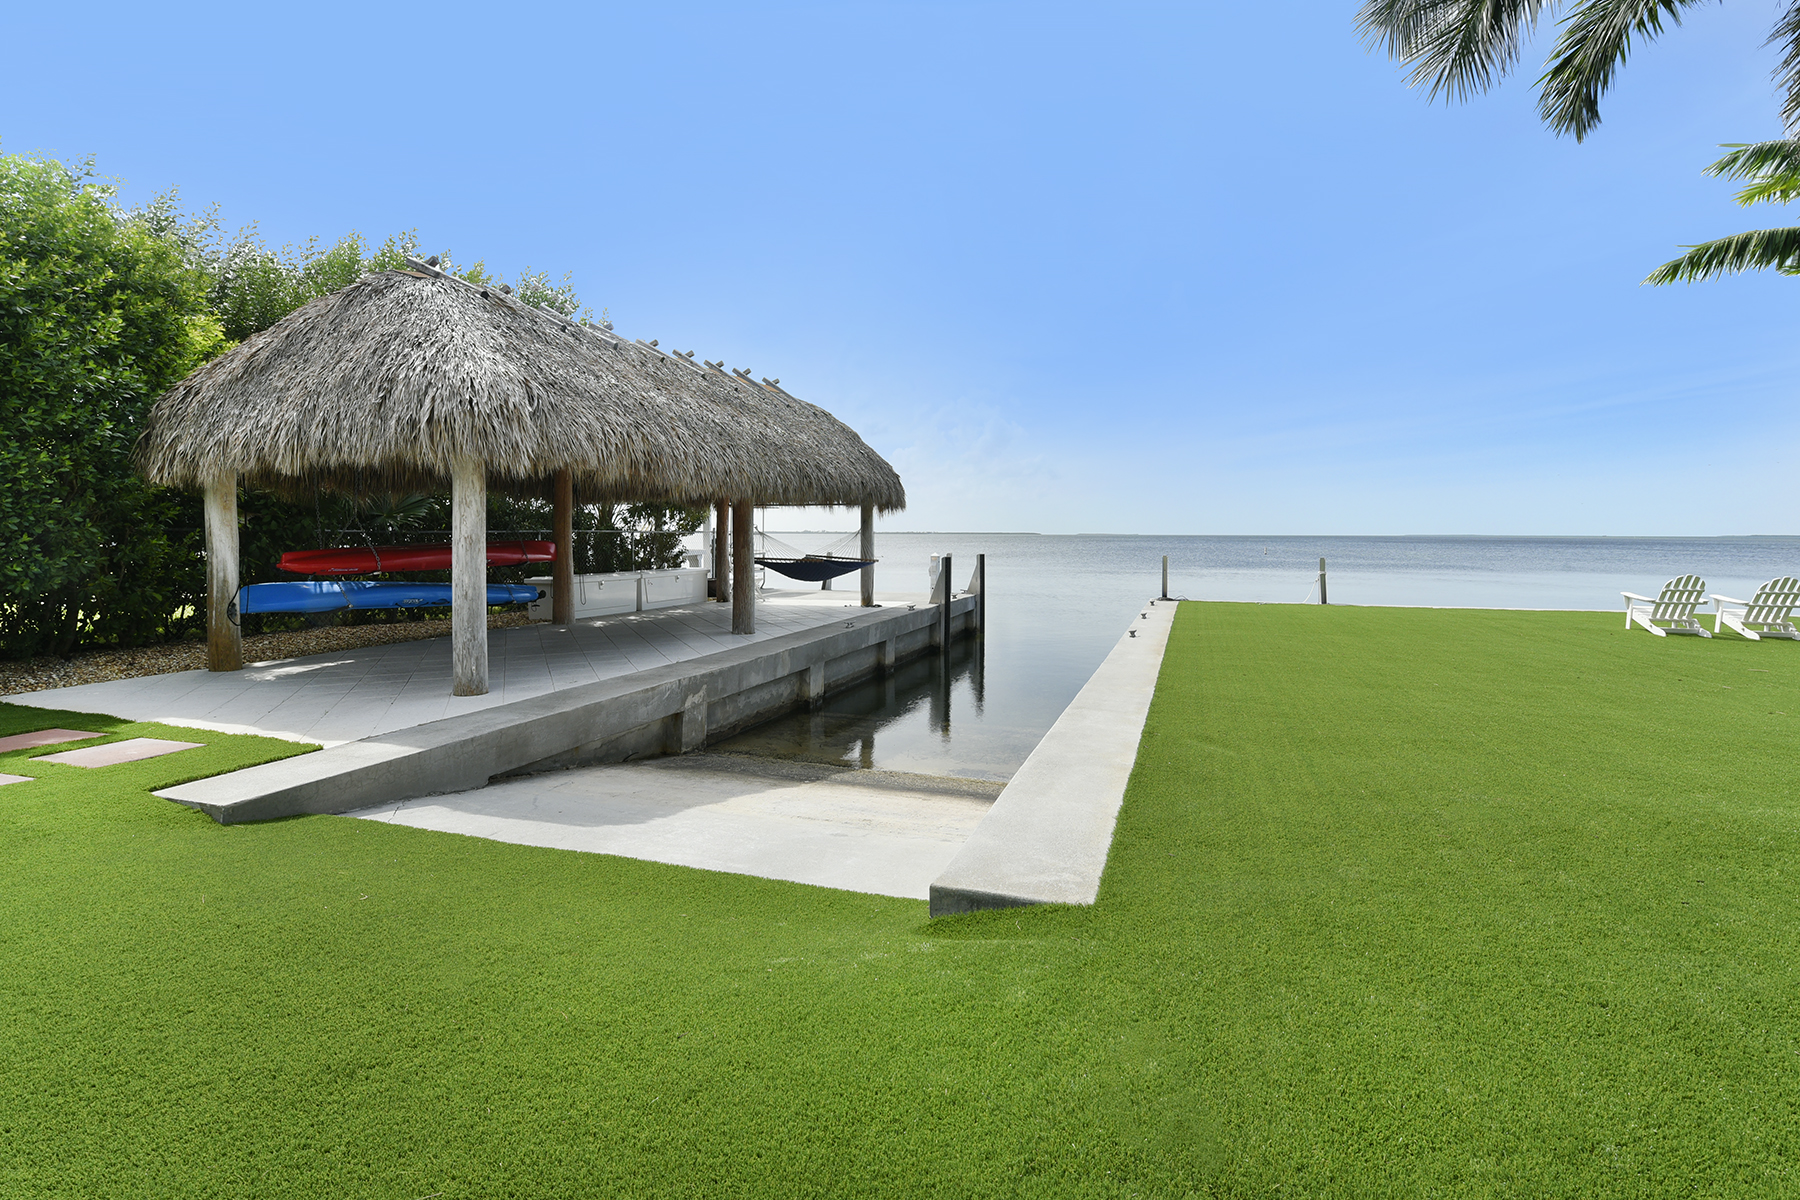 Additional photo for property listing at Casa Del Sol 169 Indian Mound Trail Islamorada, Флорида 33070 Соединенные Штаты